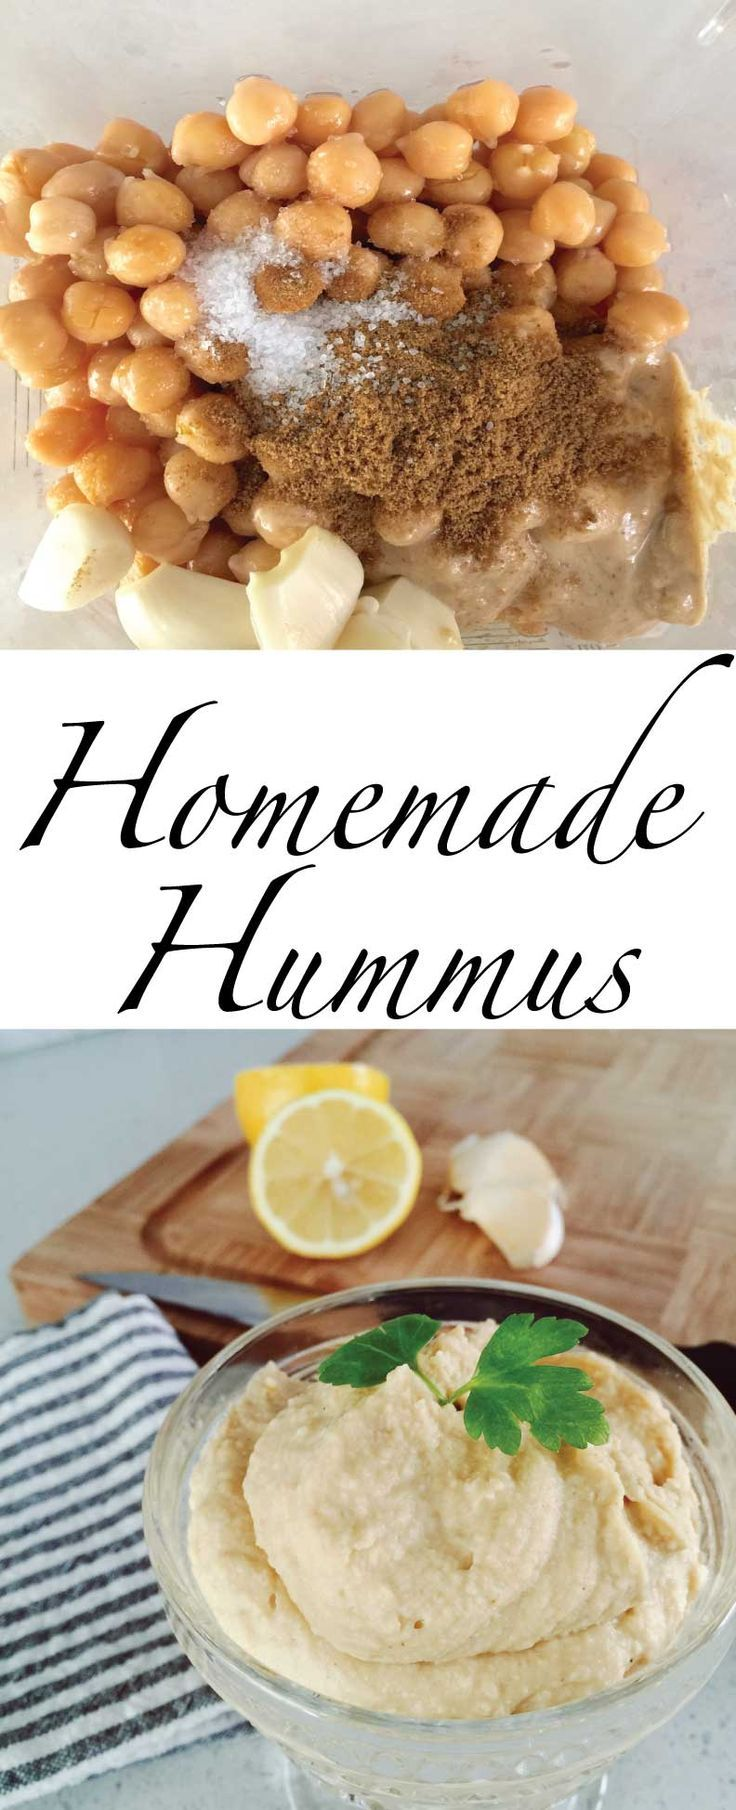 You will love this easy lemon garlic hummus recipe. Through all the ingredients into your blender and make it for snack or as a healthy appetizer. Serve with vegetables, pita bread or whole grain crackers.